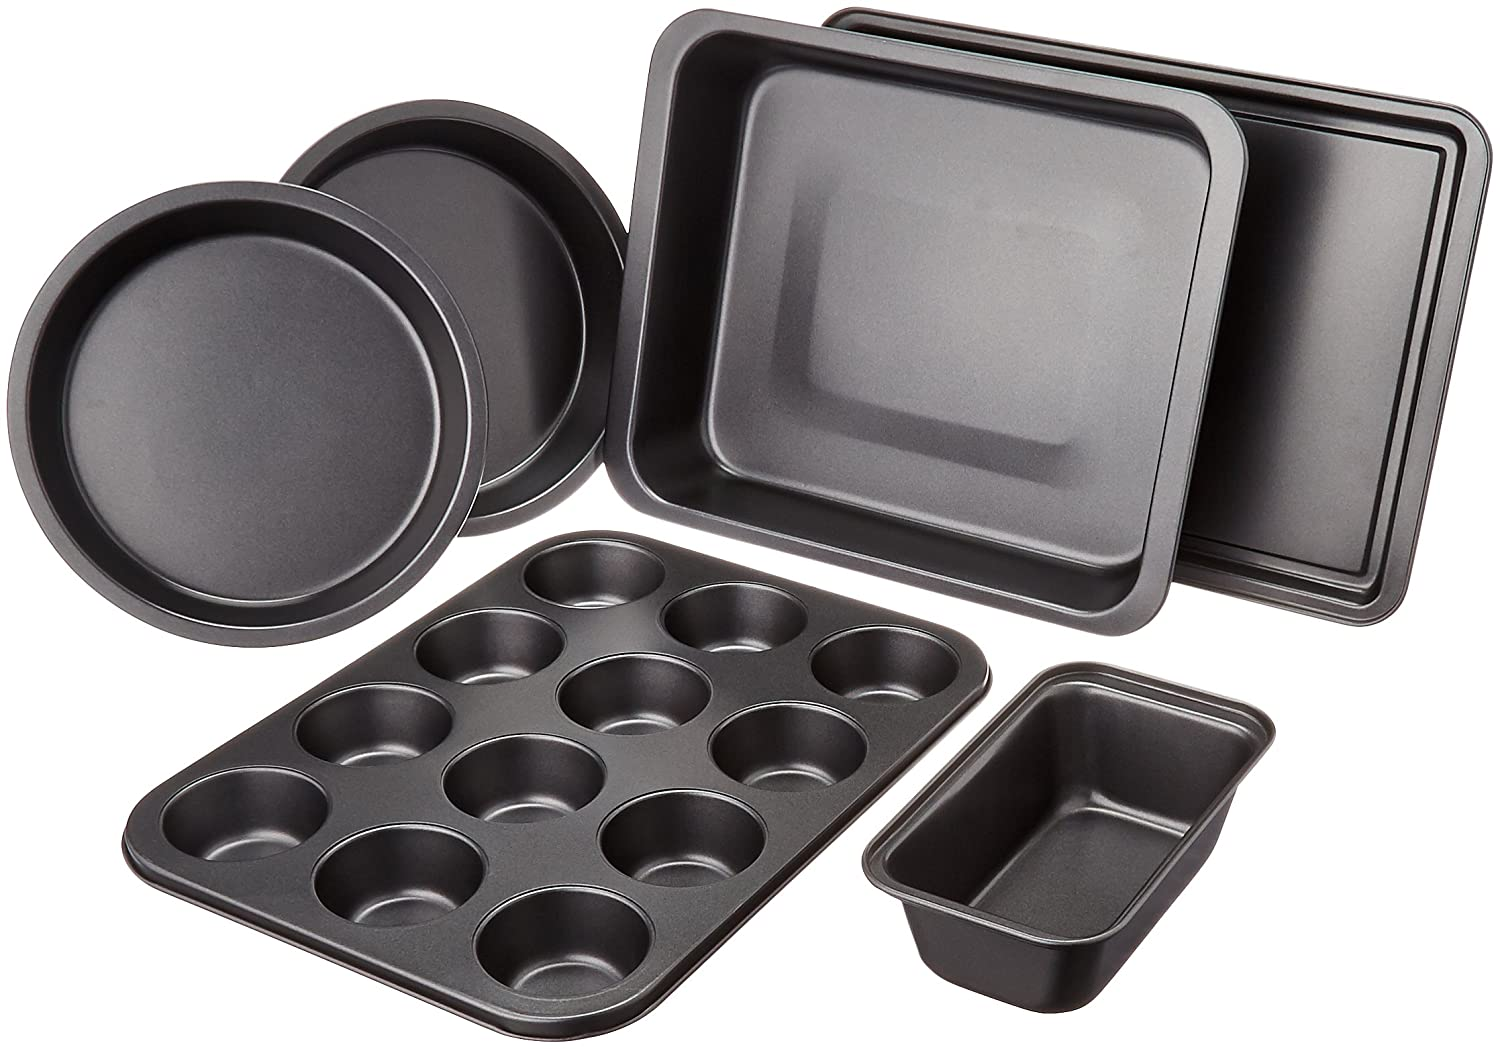 AmazonBasics 6-Piece Bakeware Set